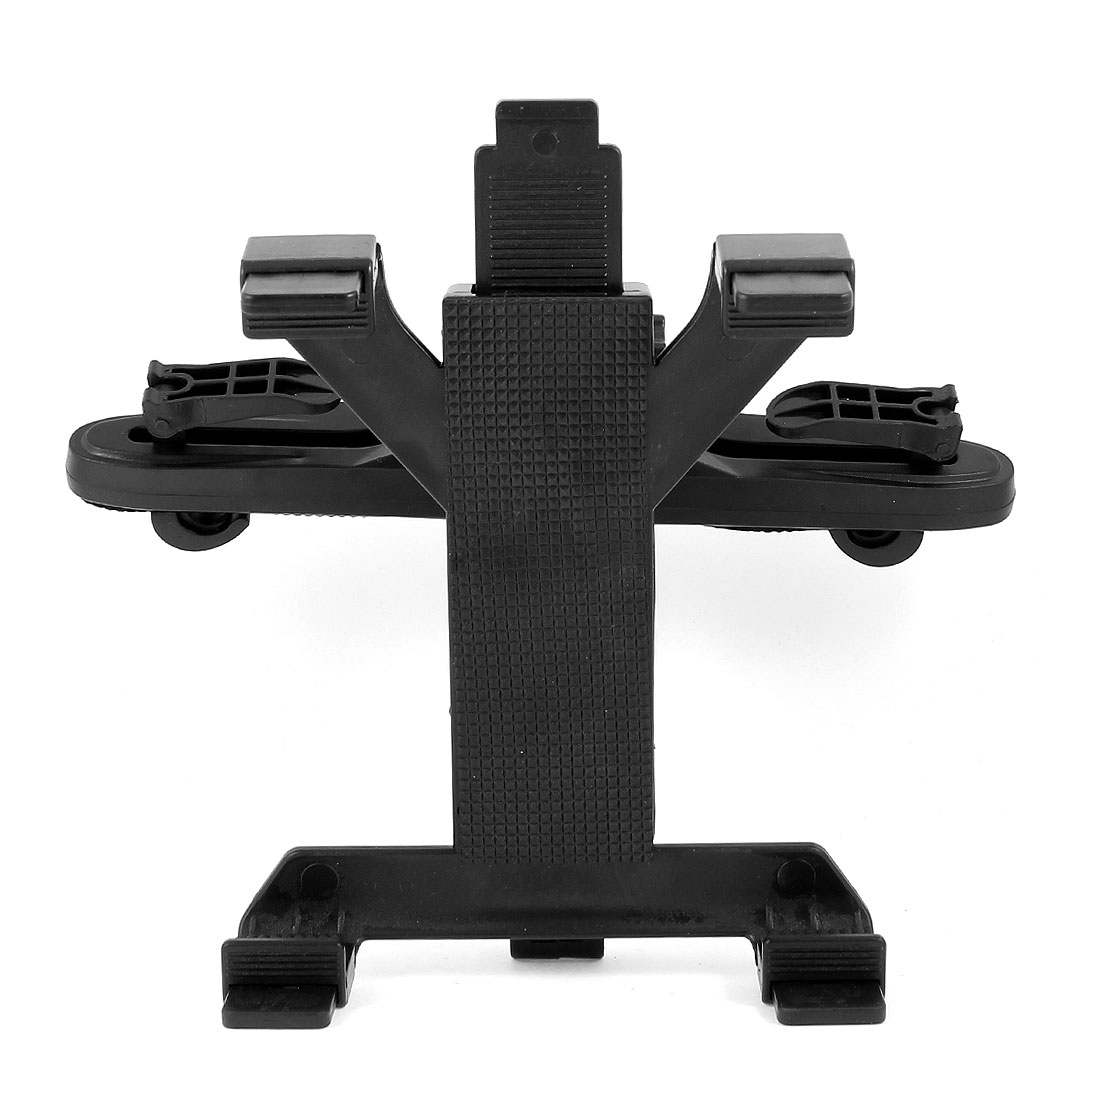 Black 360 Degree Rotation Car Backrest Mount Stand Holder Bracket for Tablet PC